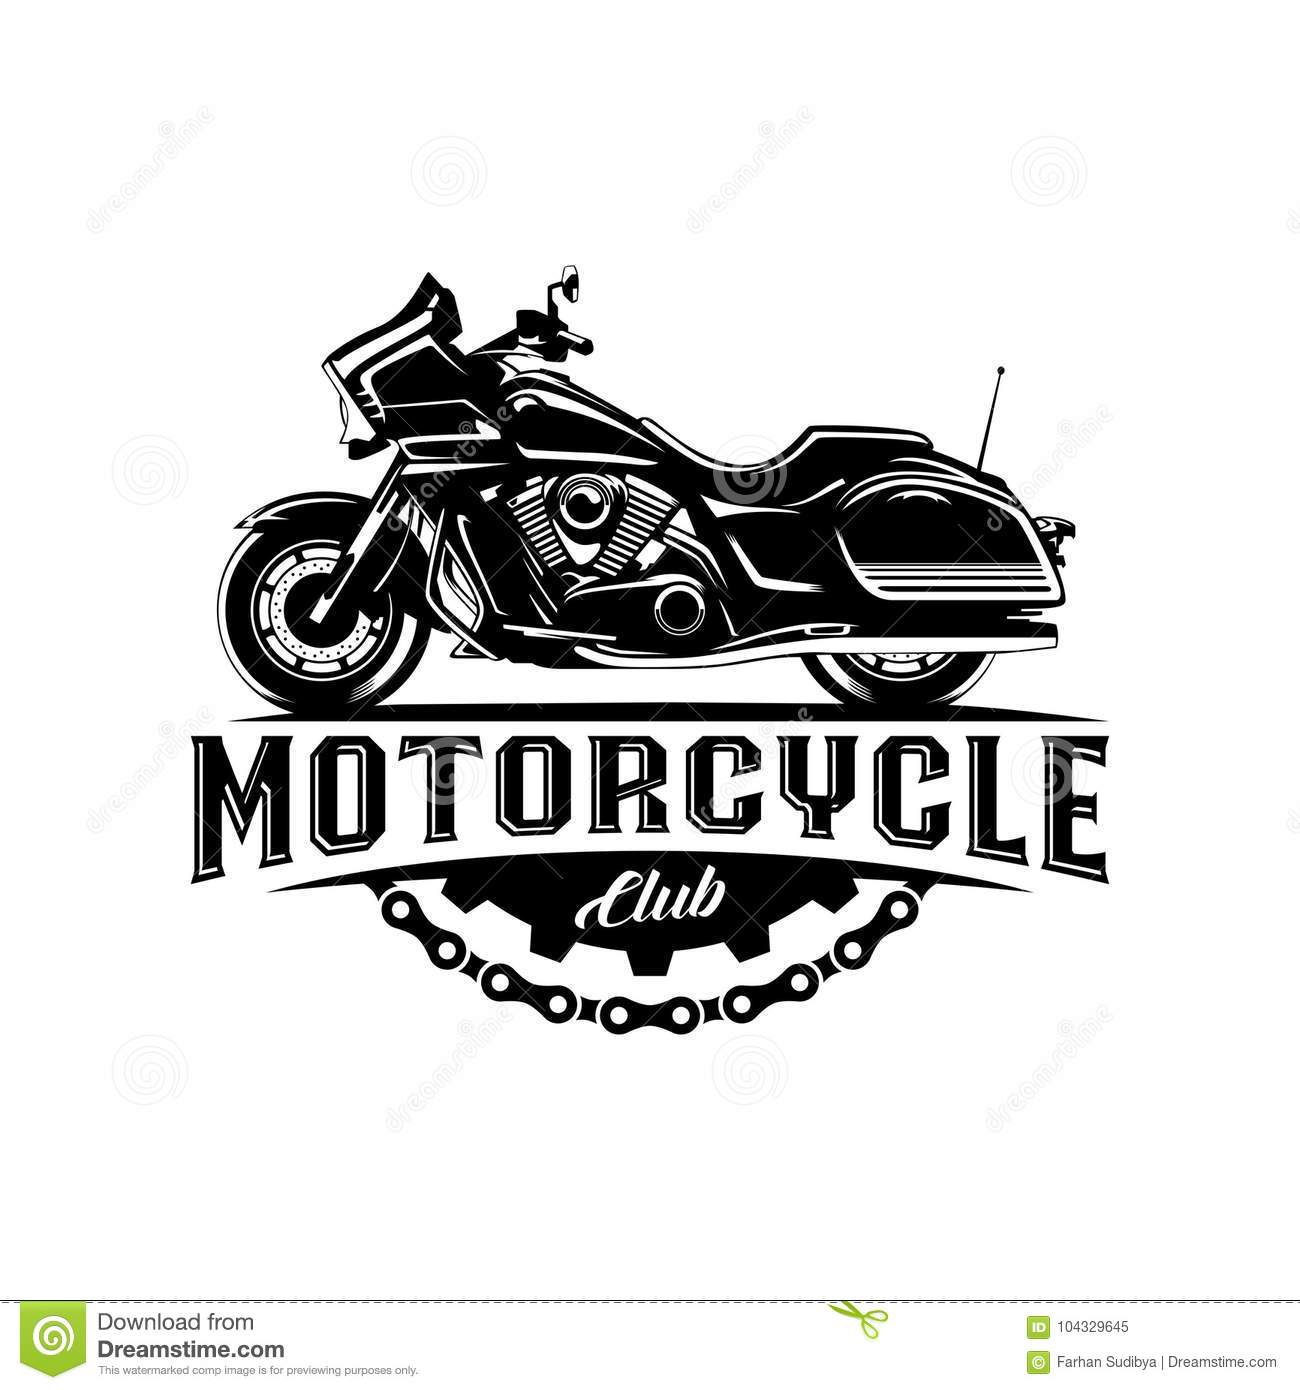 Motorcycle Club Black With Gear Illustration Label